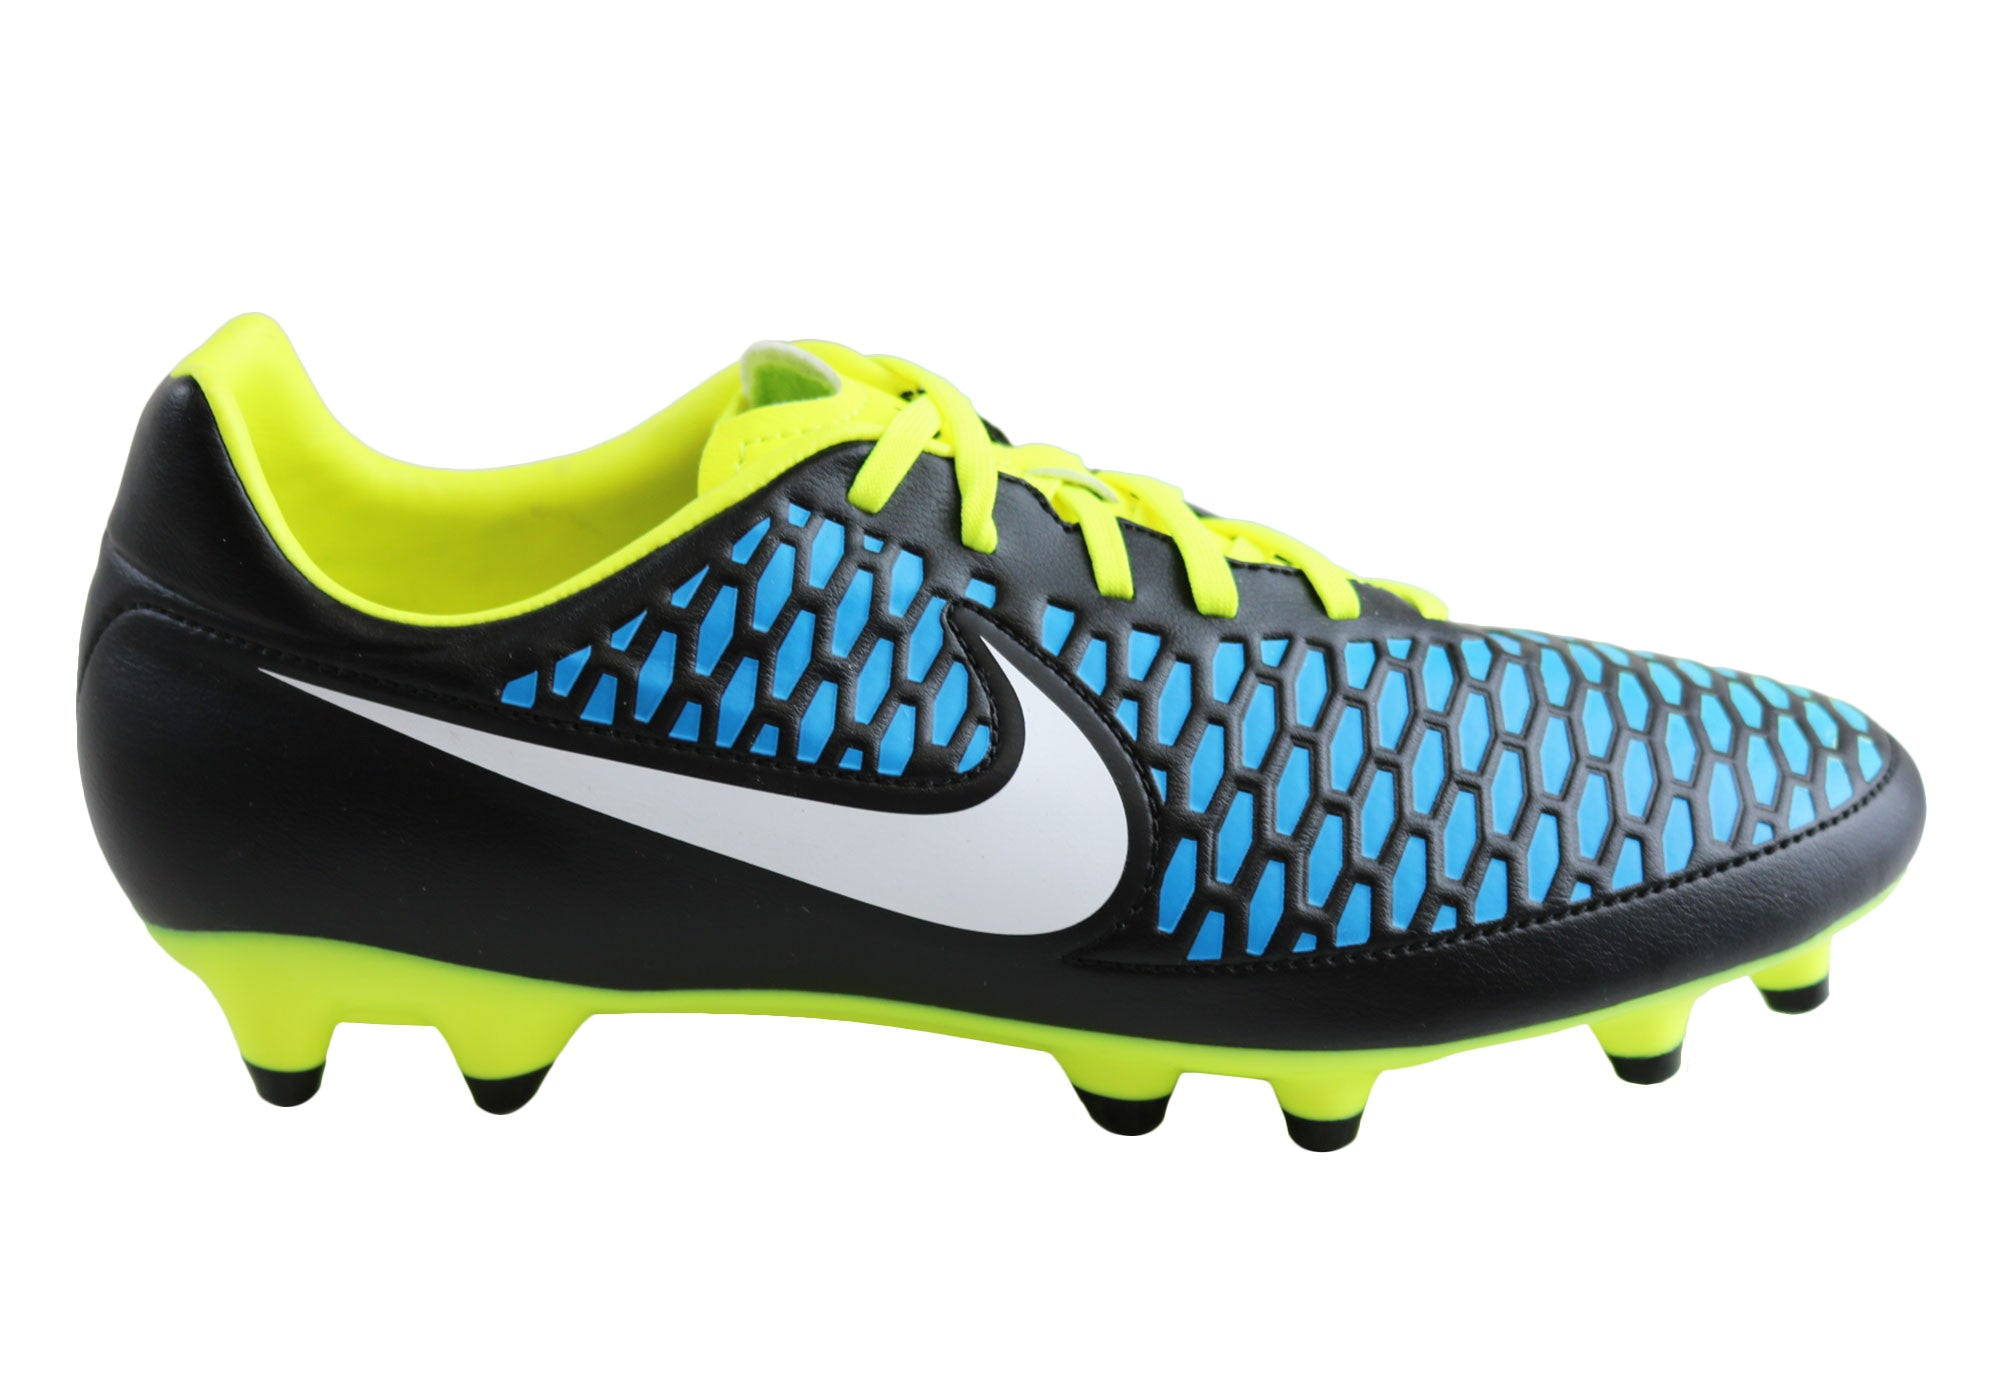 malo Investigación cuero  Nike Magista Onda Fg Mens Moulde Football/Soccer Boots | Brand House Direct